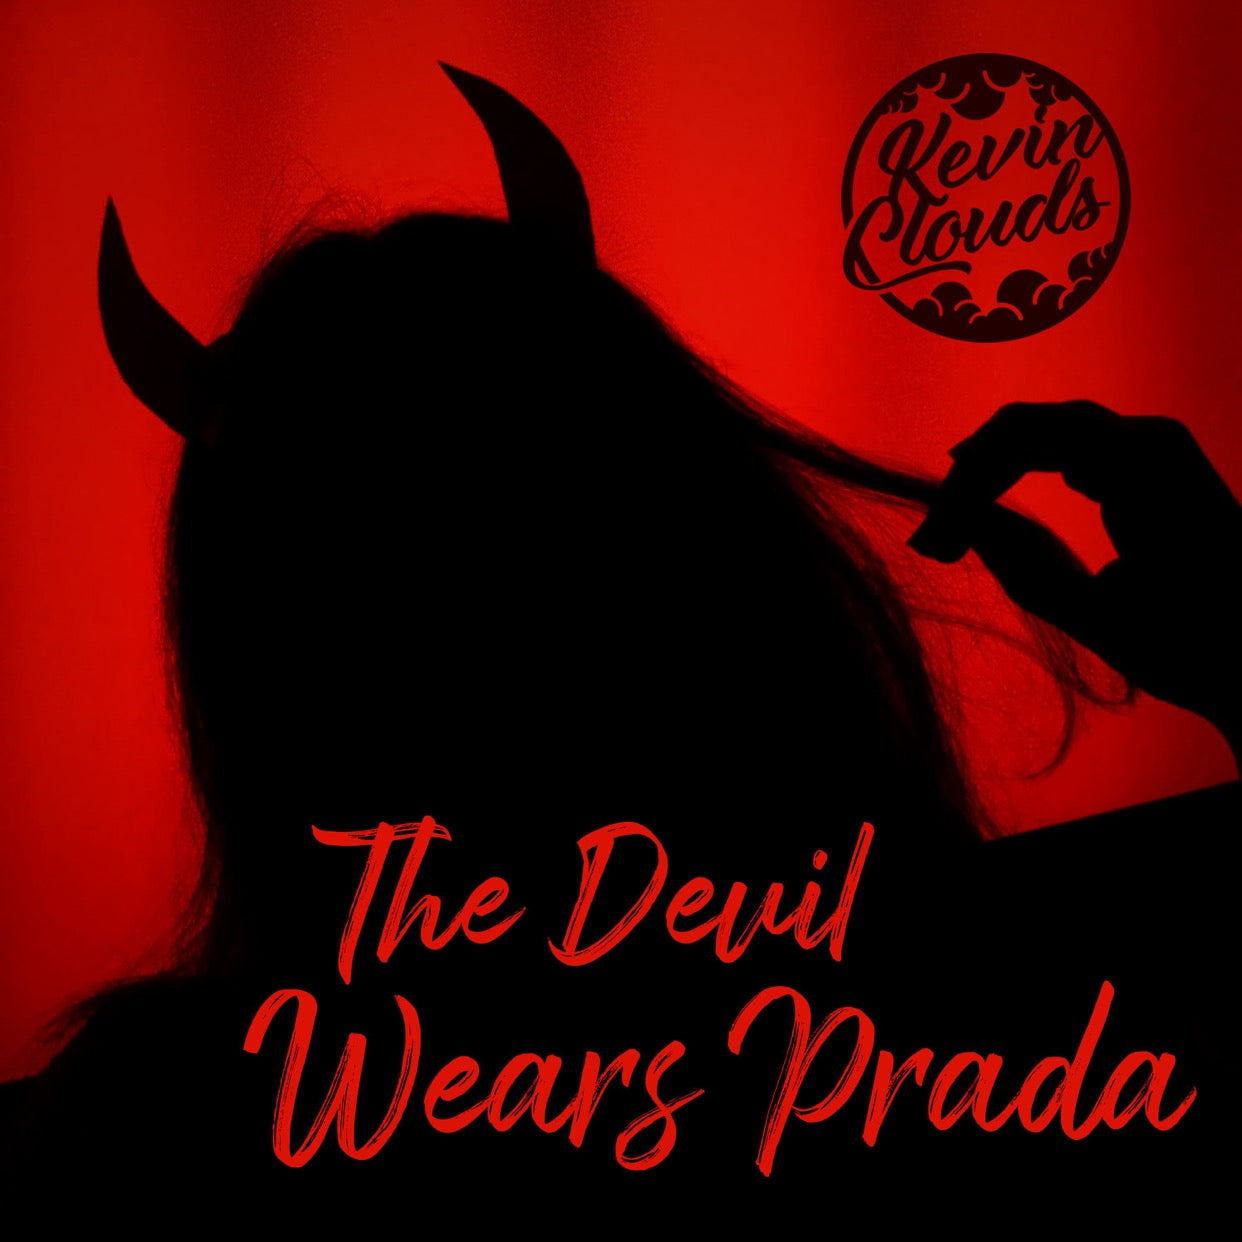 Kevin Clouds – 'The Devil Wears Prada'